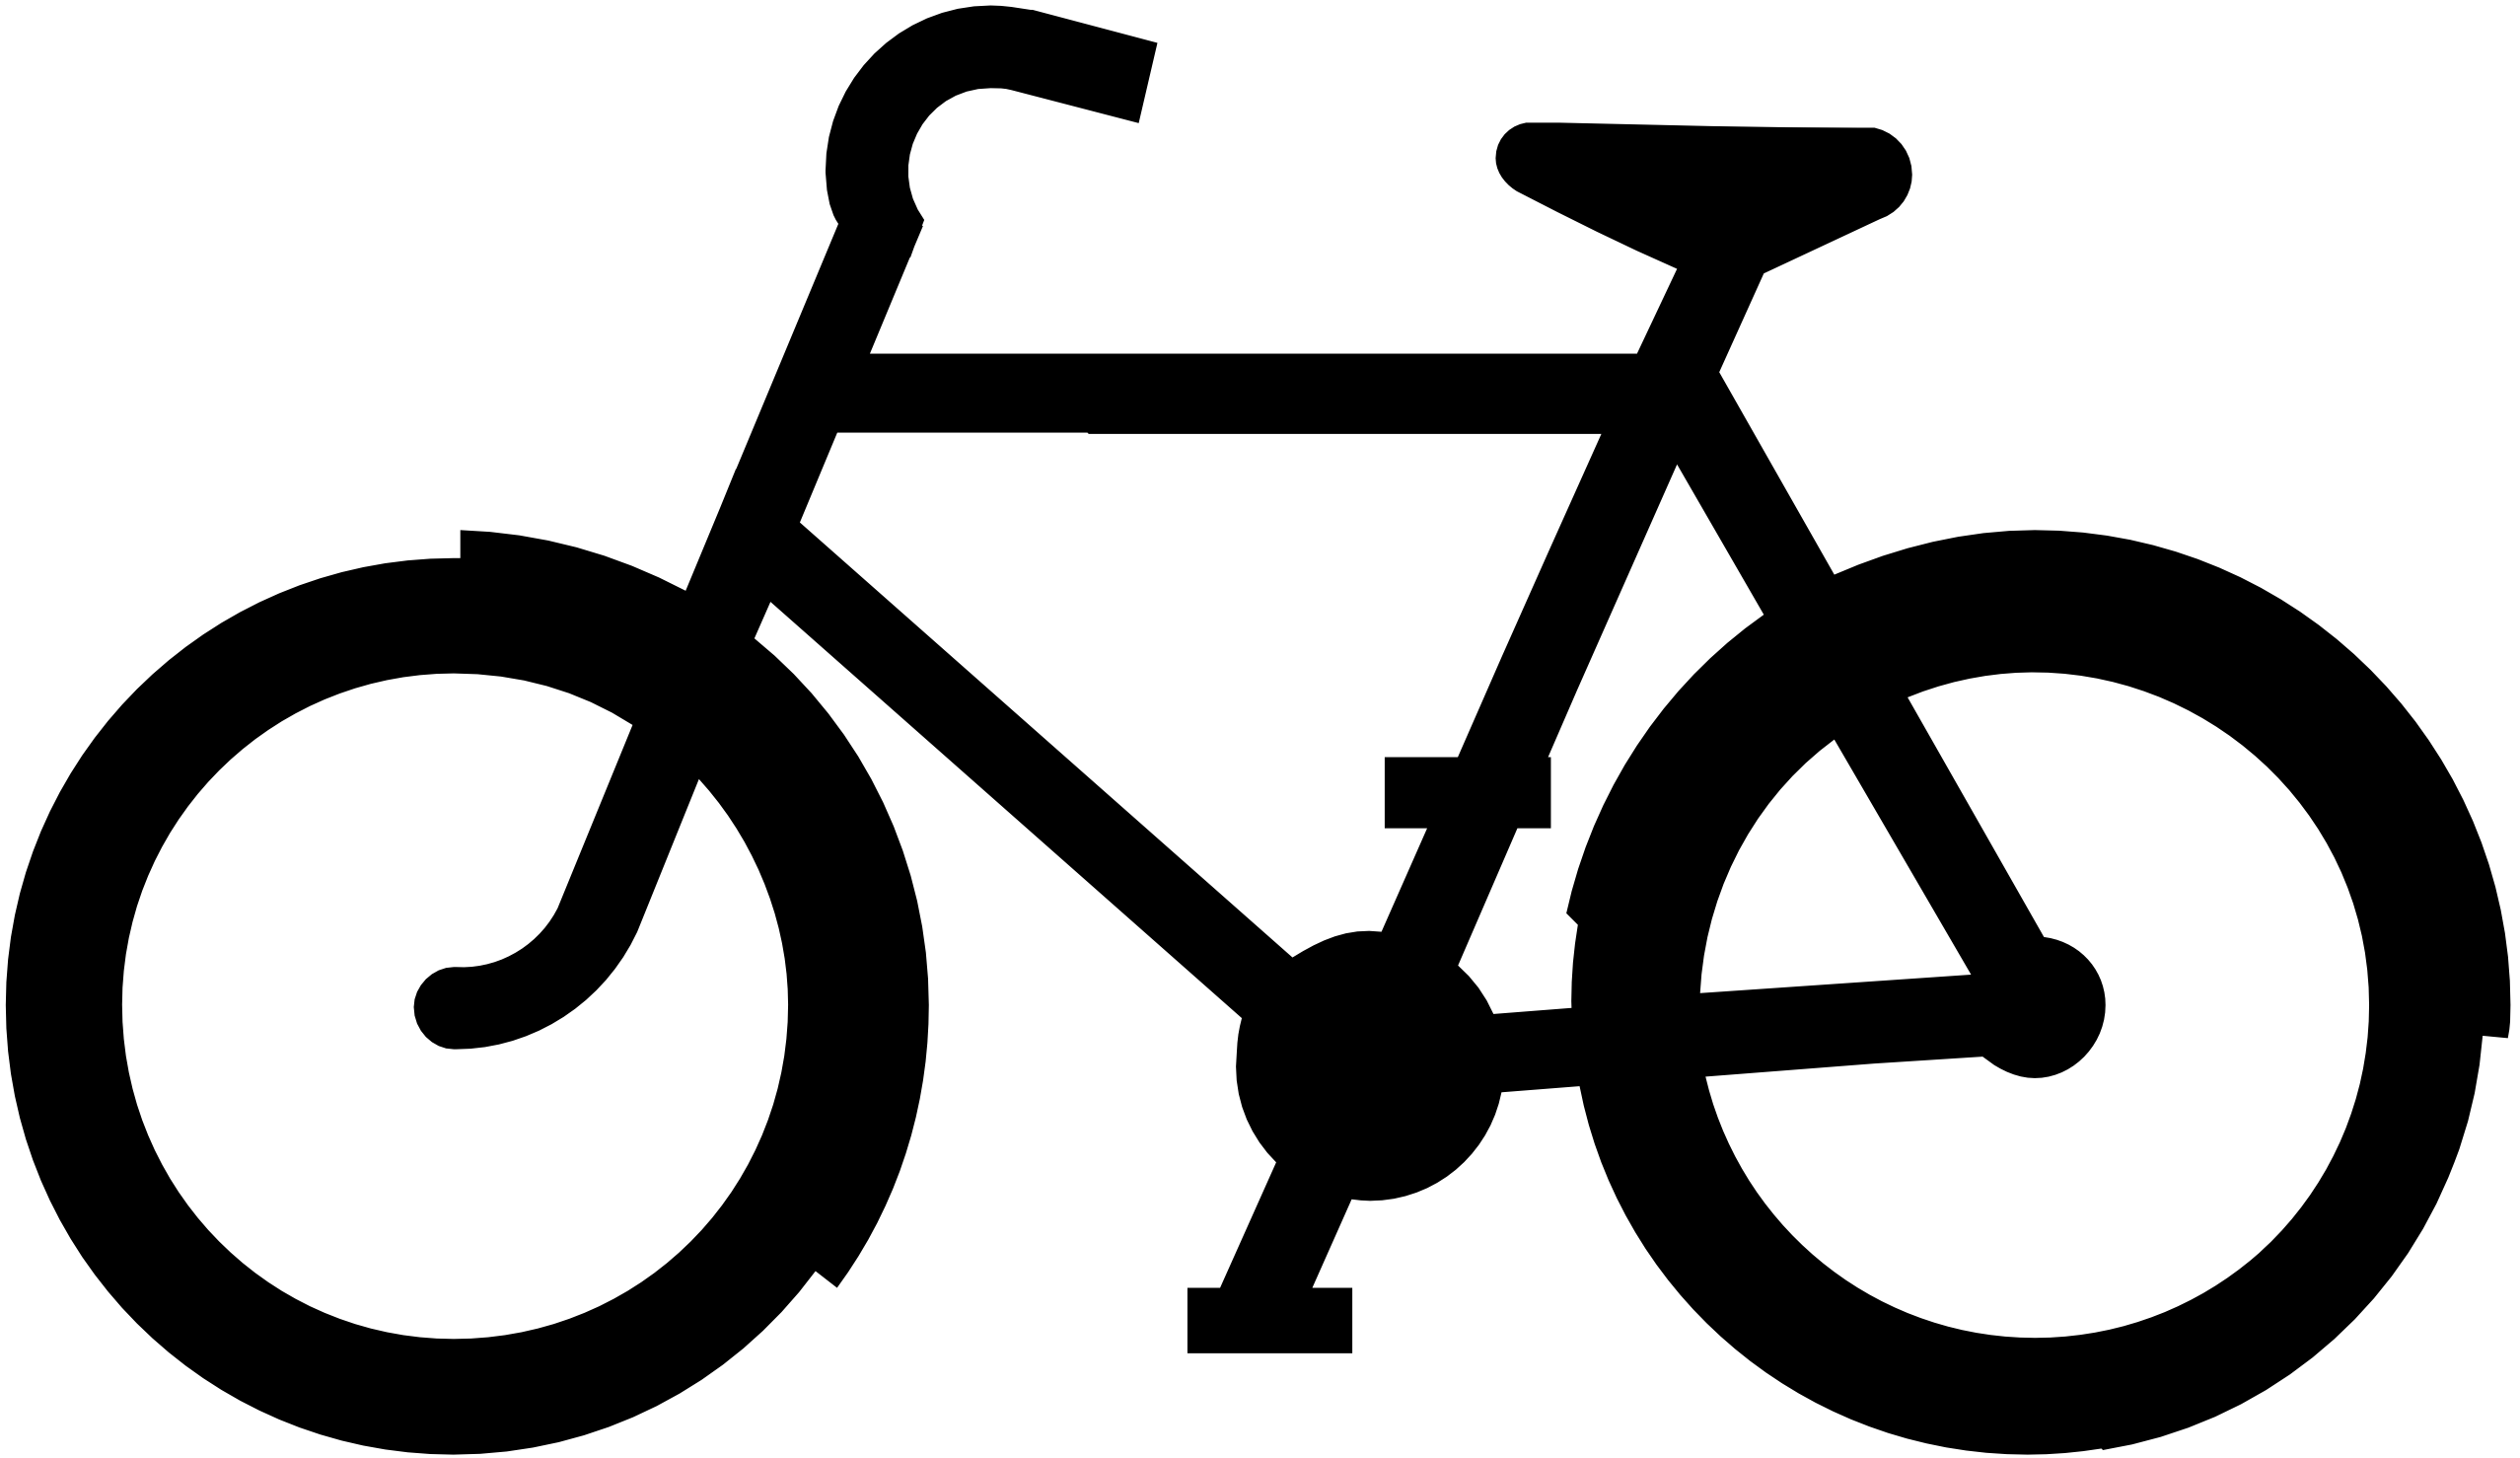 Bike Clip Art kite clipart black and